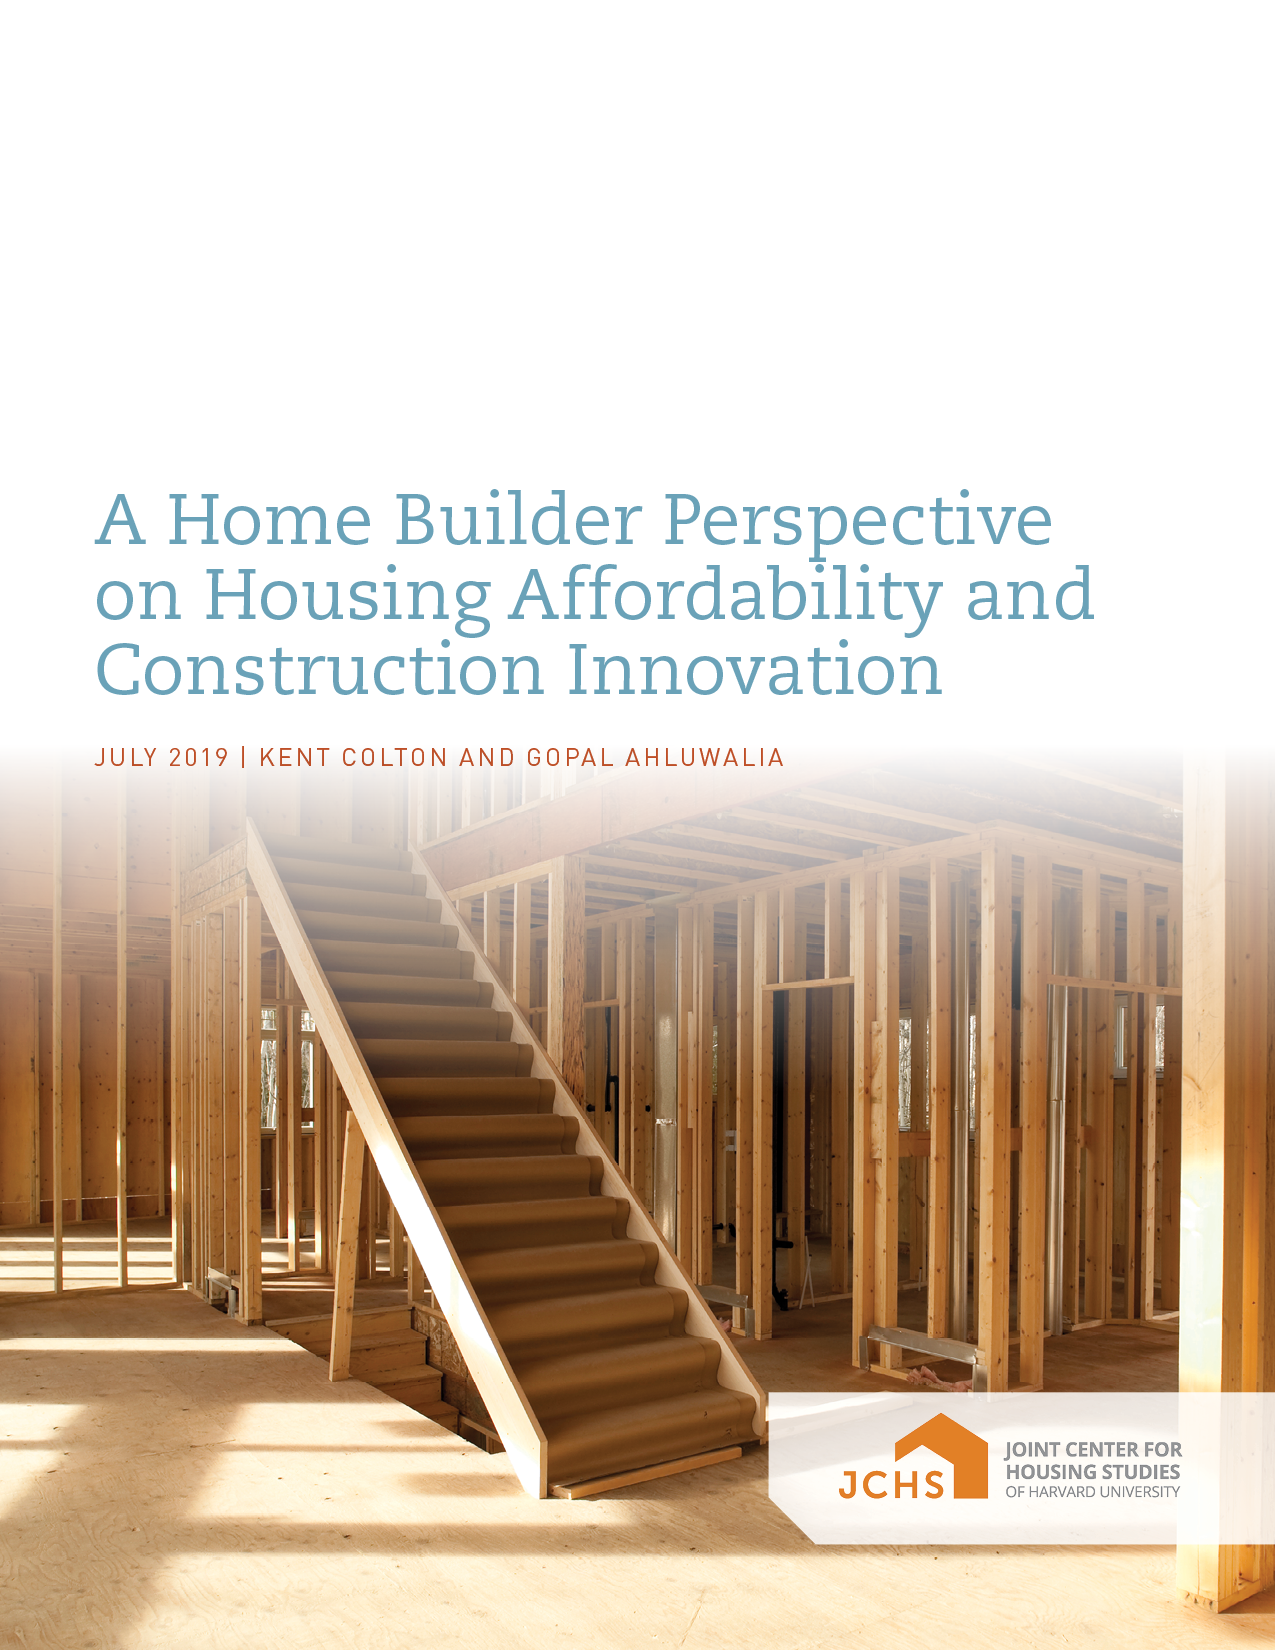 A Home Builder Perspective on Housing Affordability and Construction Innovation